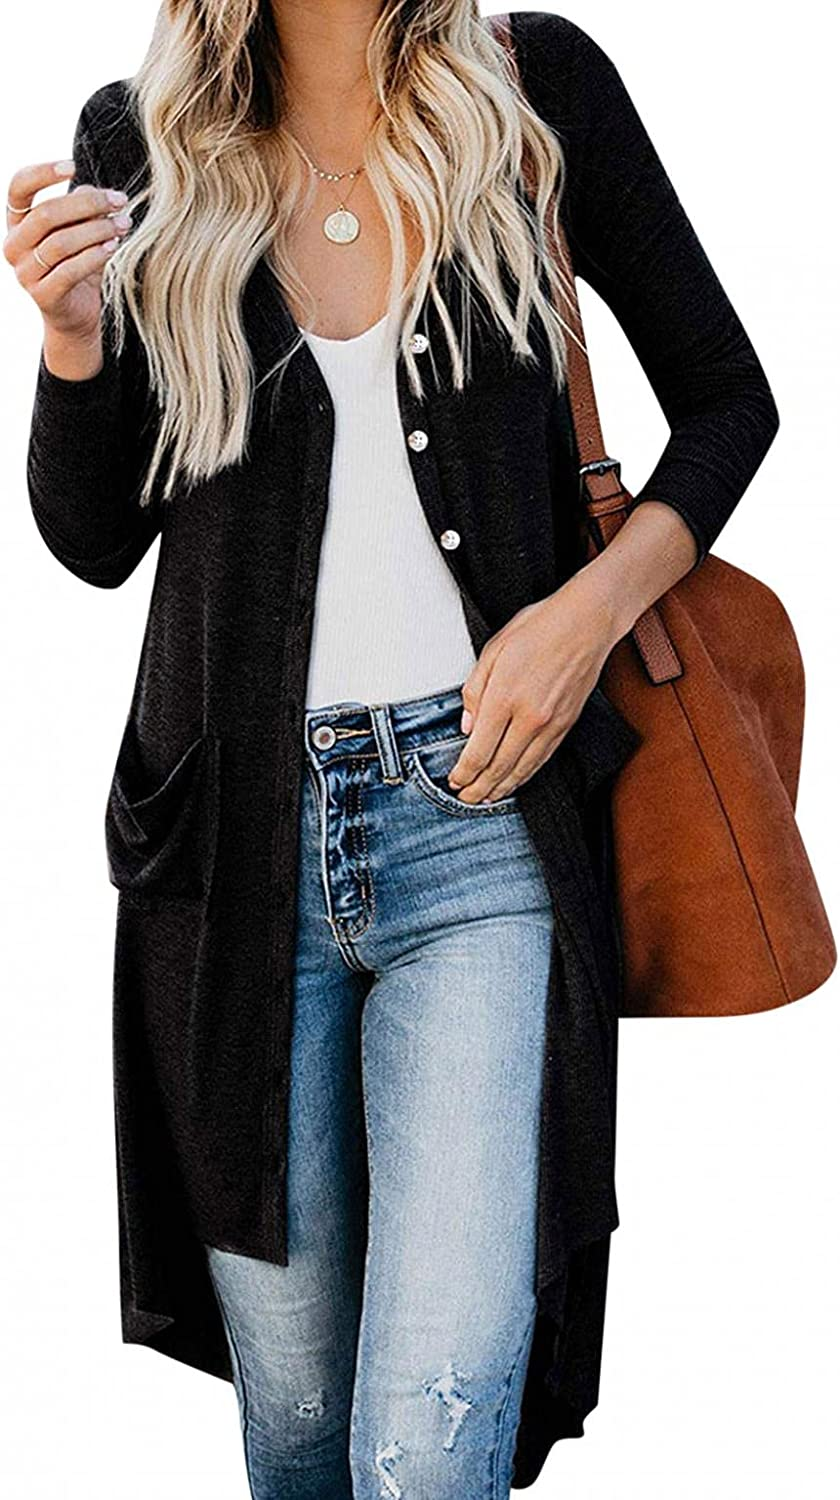 Sweaters for Women,Womens Open Front Long Sleeve Cardigans Chunky Knit Draped Sweaters Outwear with Pockets